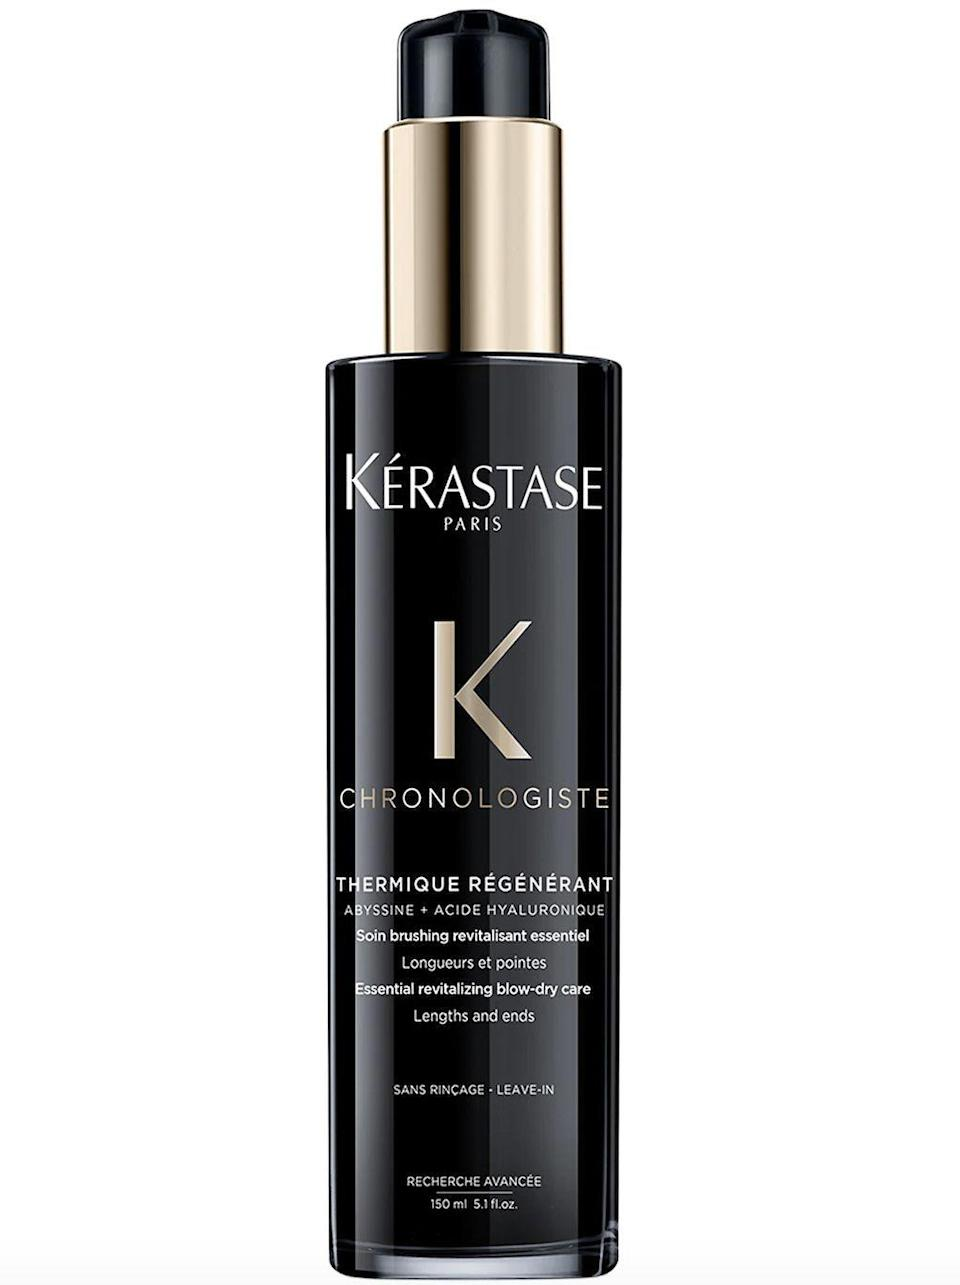 """<p><strong>Kérastase</strong></p><p>sephora.com</p><p><strong>$52.00</strong></p><p><a href=""""https://go.redirectingat.com?id=74968X1596630&url=https%3A%2F%2Fwww.sephora.com%2Fproduct%2Fkerastase-chronologiste-blow-dry-primer-dull-brittle-hair-P466882&sref=https%3A%2F%2Fwww.townandcountrymag.com%2Fstyle%2Fbeauty-products%2Fg35255030%2Fhealthy-hair-tips%2F"""" rel=""""nofollow noopener"""" target=""""_blank"""" data-ylk=""""slk:Shop Now"""" class=""""link rapid-noclick-resp"""">Shop Now</a></p>"""